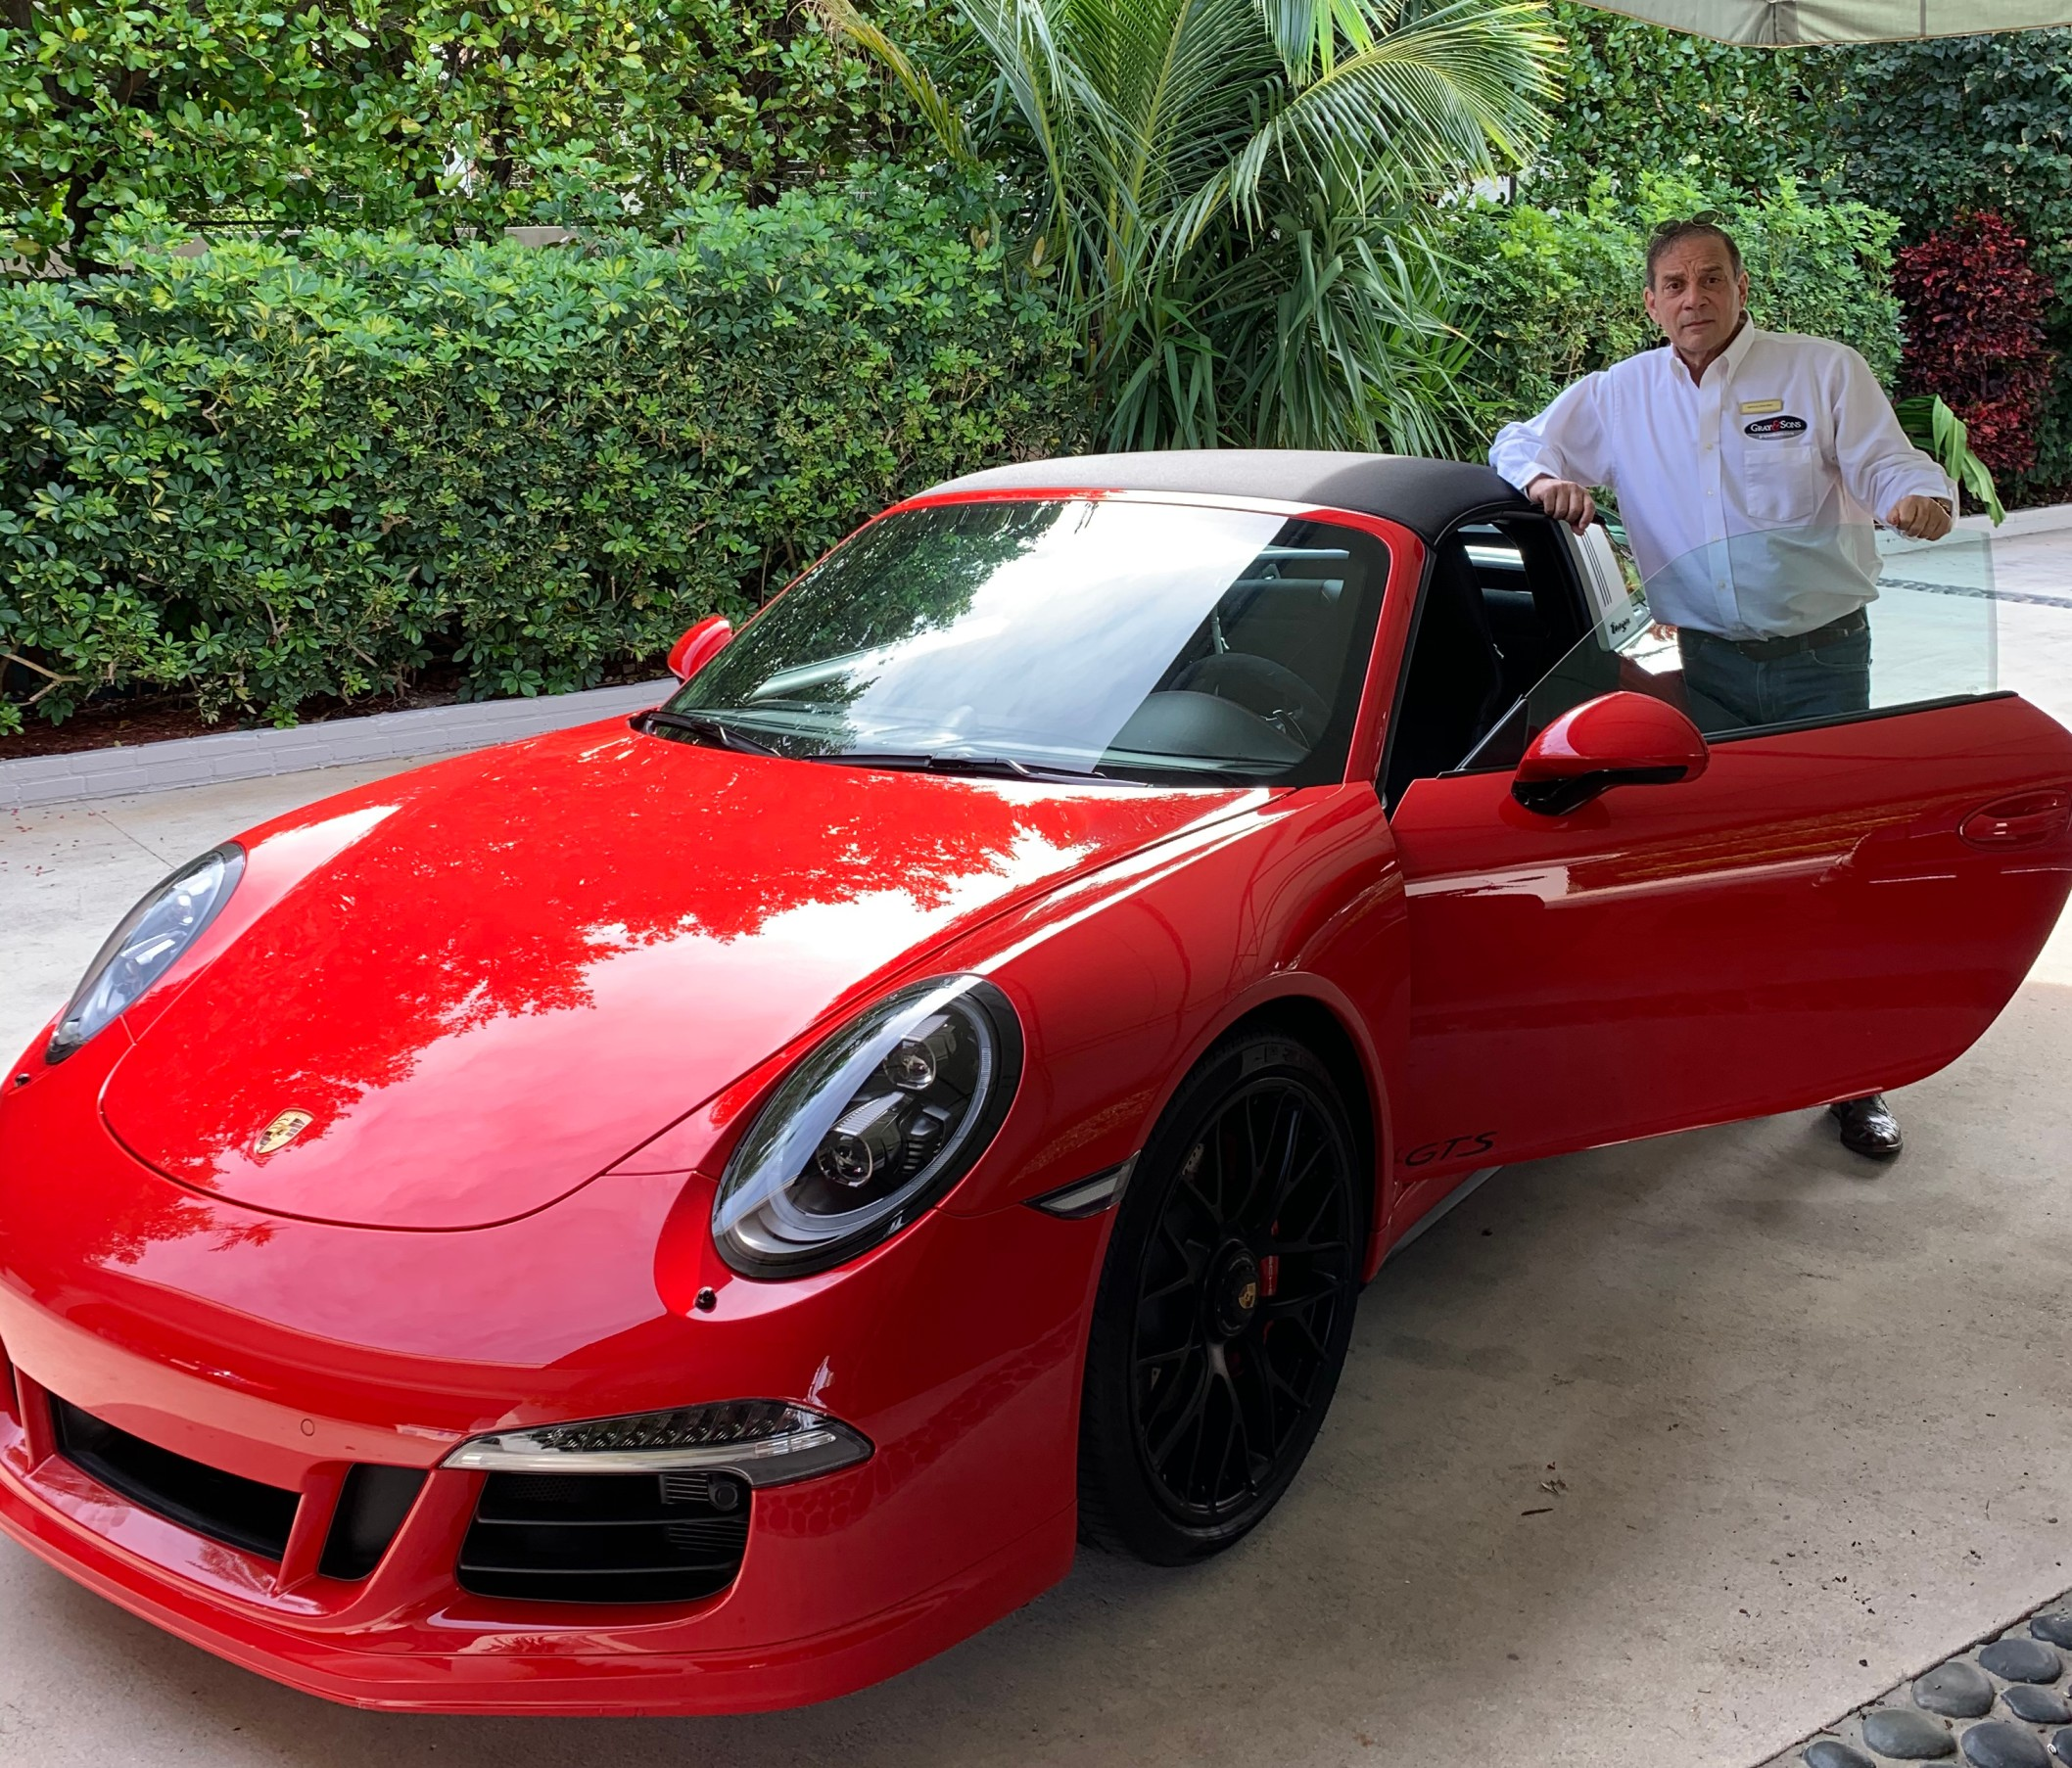 Keith A Gray with his red Porsche 911 GTS